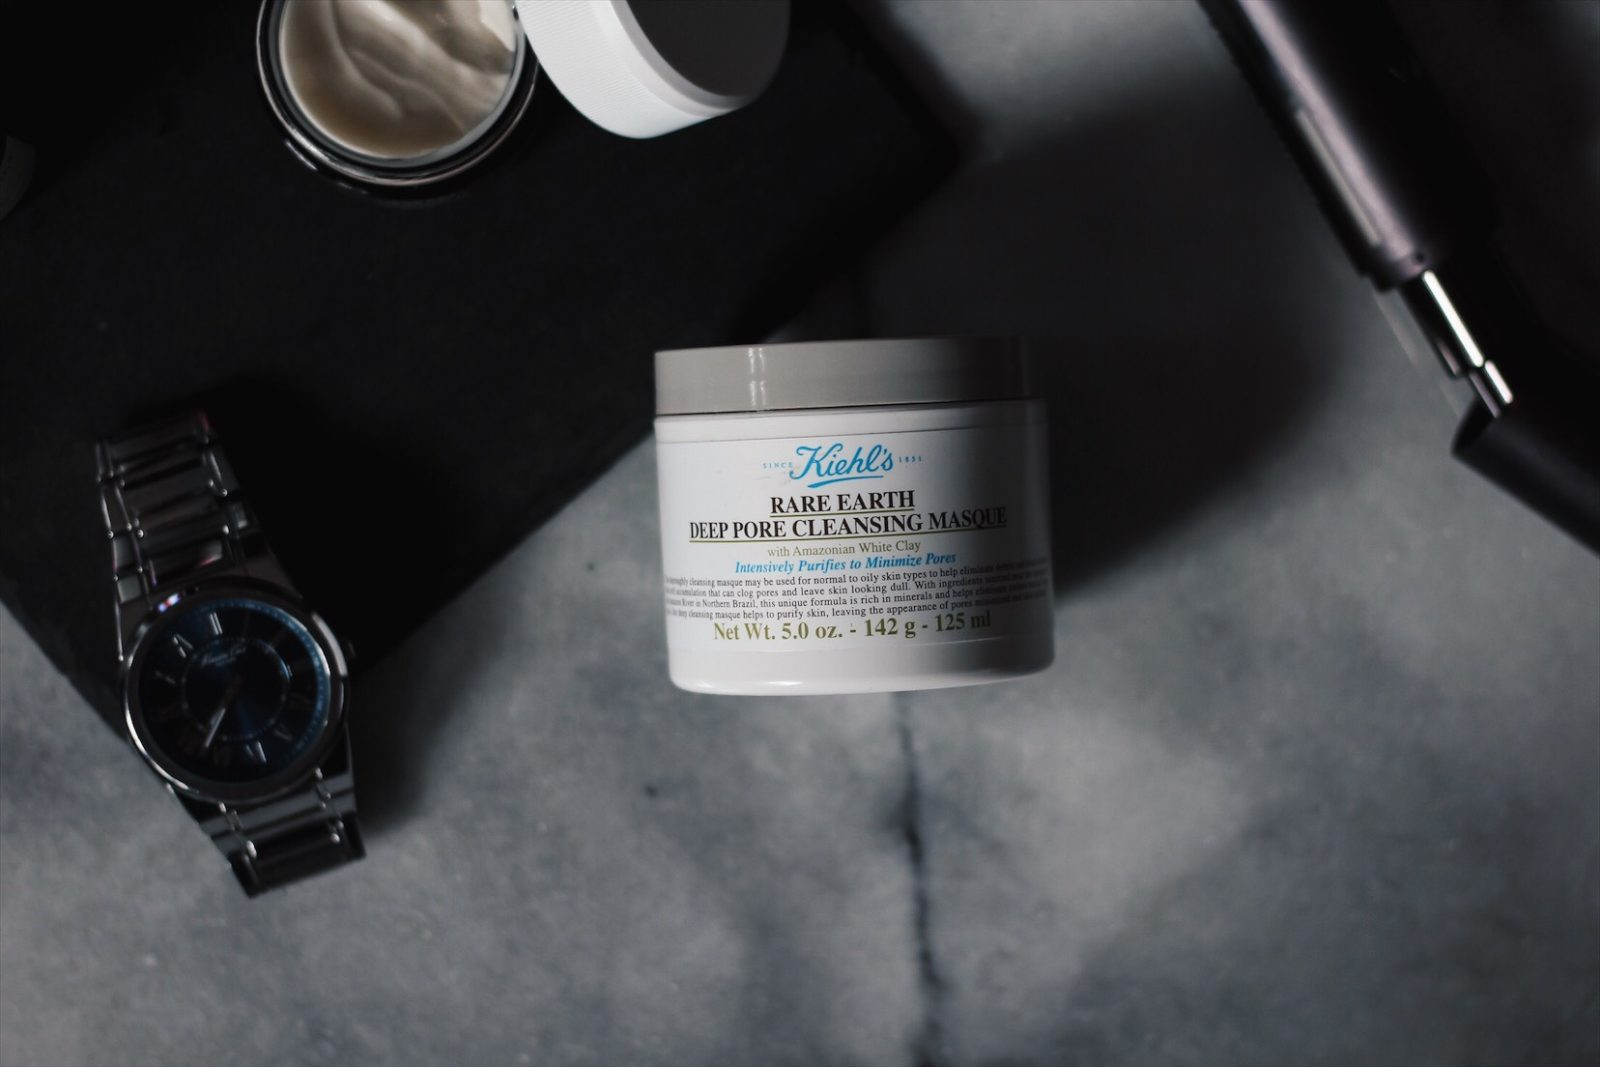 MASK MONDAY: KIEHL'S RARE EARTH DEEP PORE CLEANSING MASK